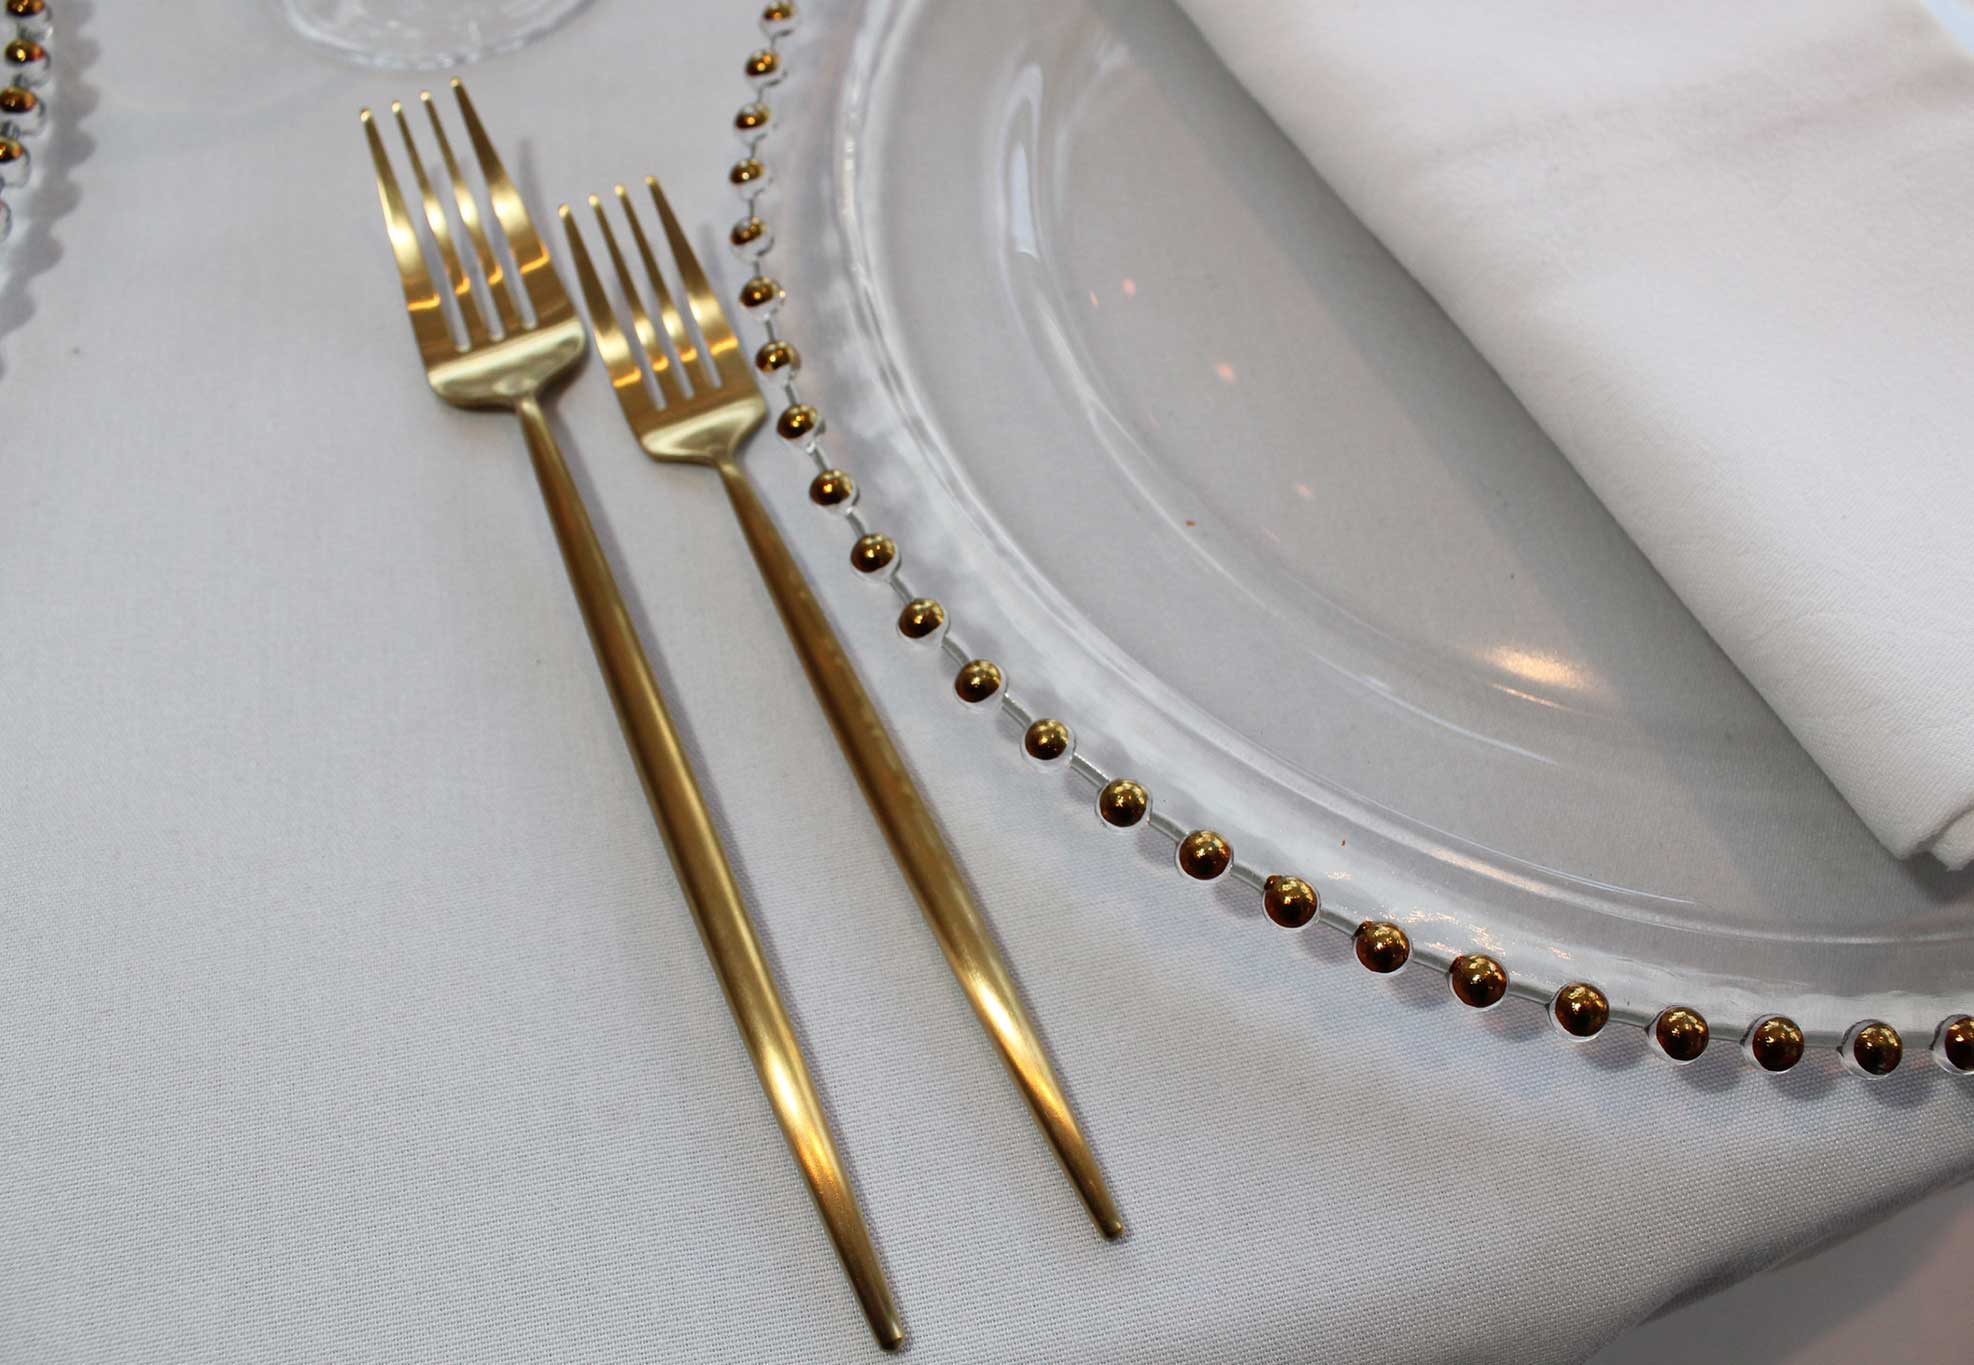 silk-estate-marquee-weddings-and-events-styling-and-hire-gold-cutlery-2